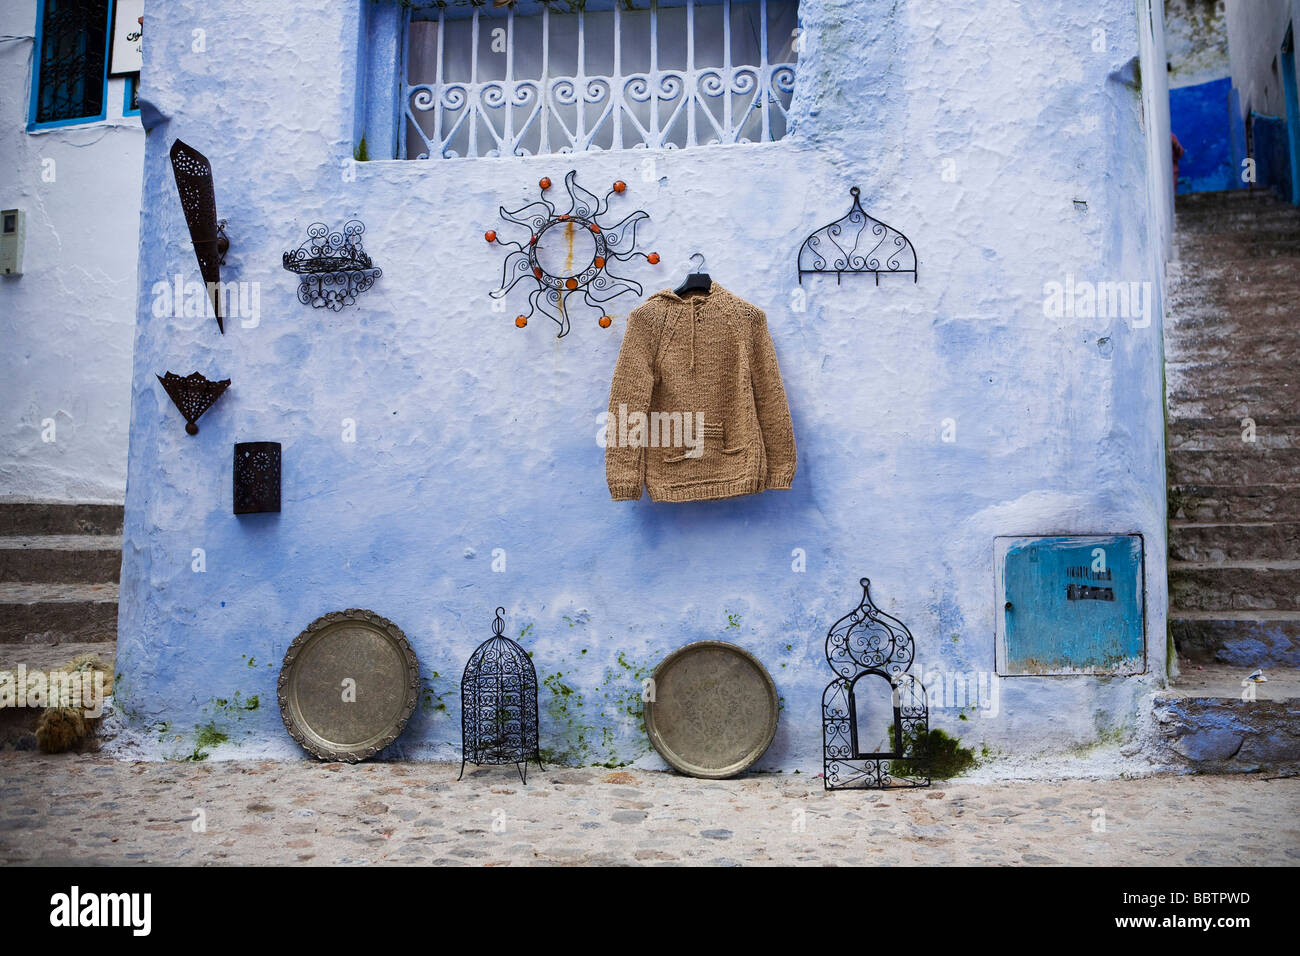 Items Hanging on a Wall, Chefchaouen, Morocco, North Africa - Stock Image